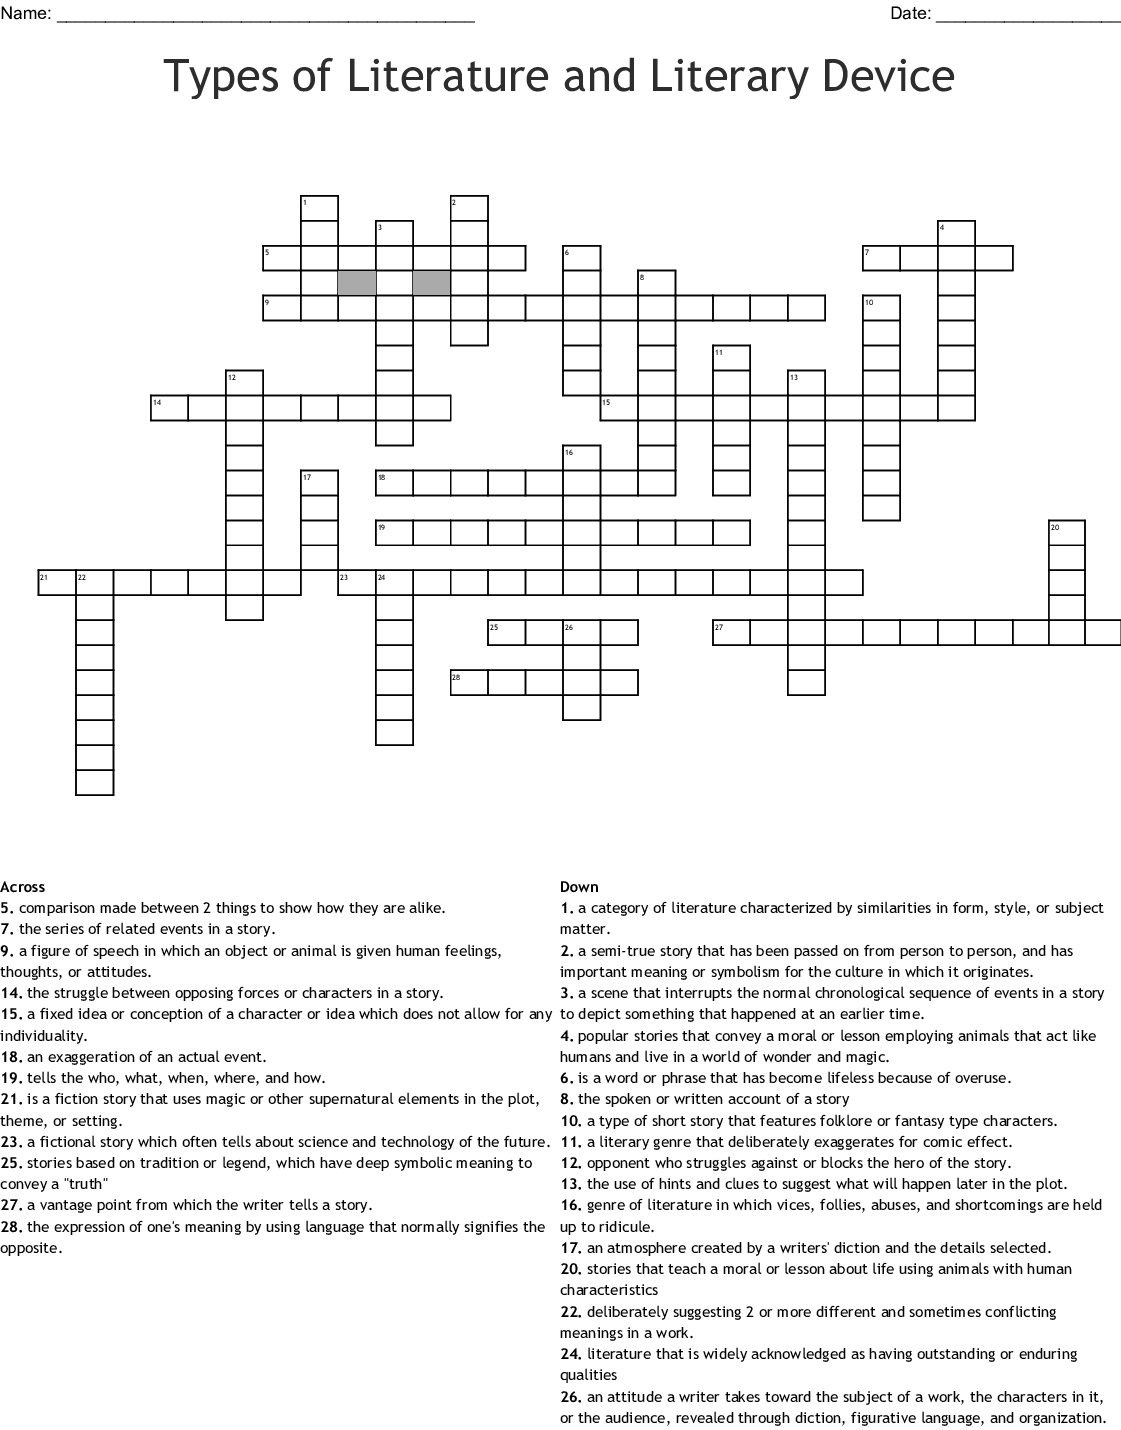 Types Of Literature And Literary Device Crossword